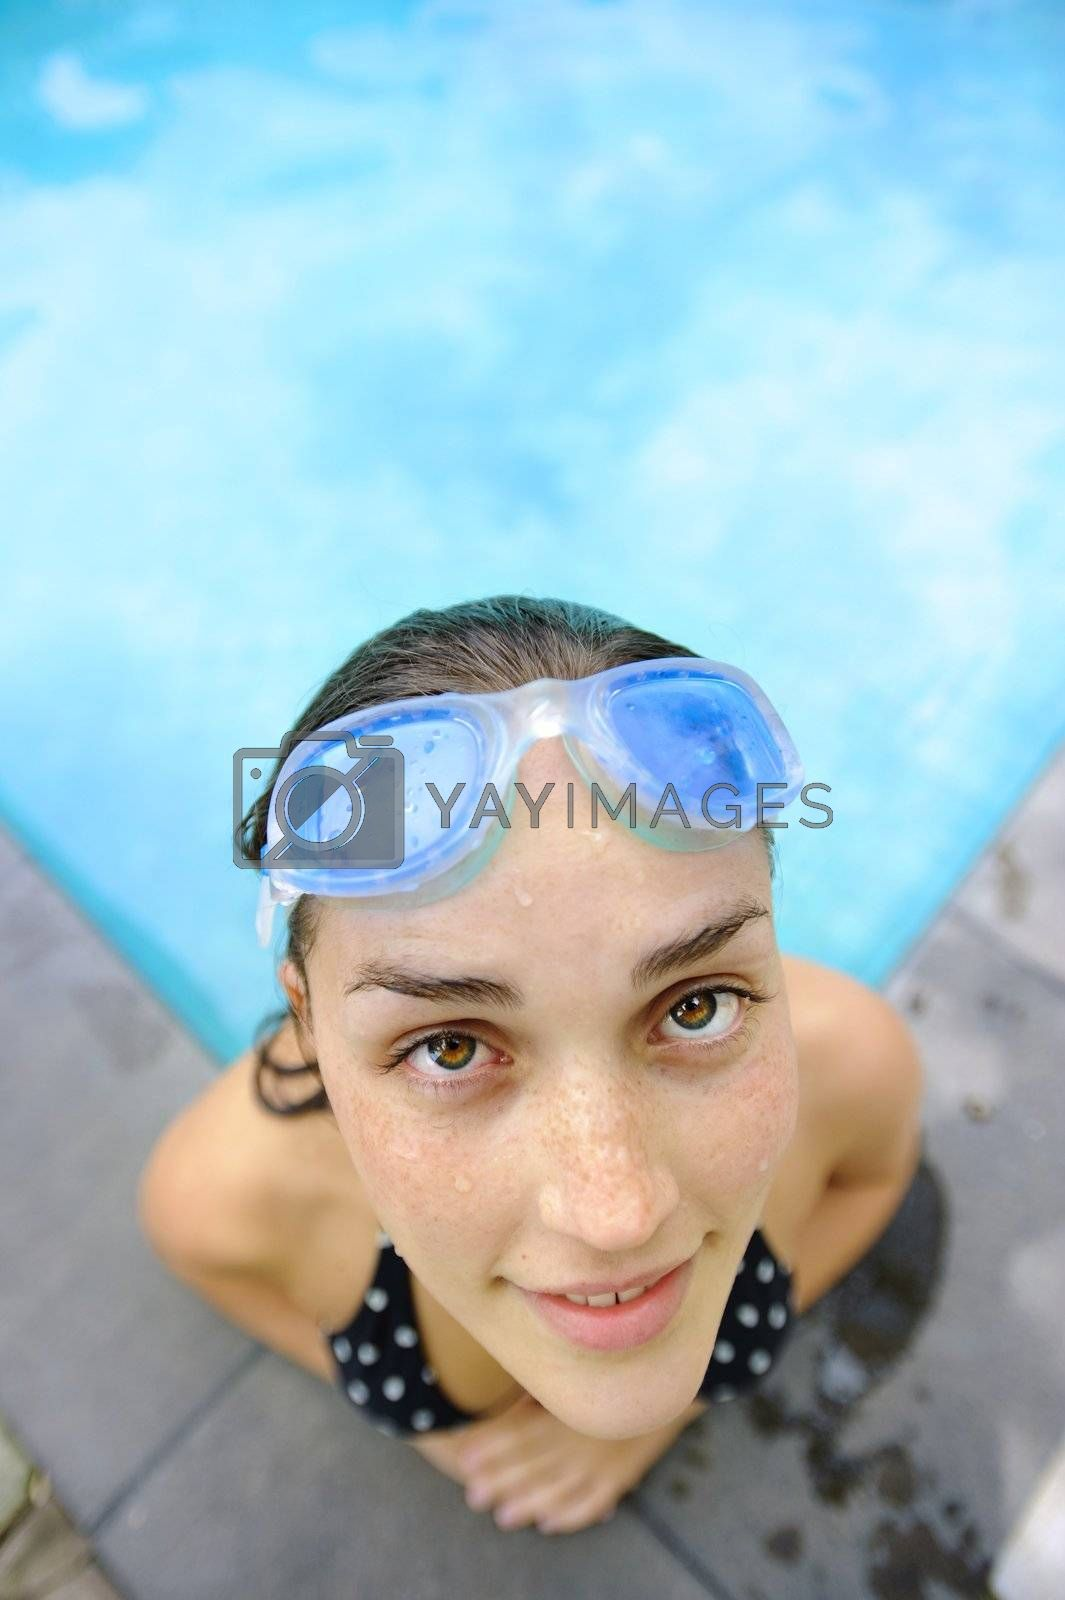 Girl looks up toward camera while in the pool